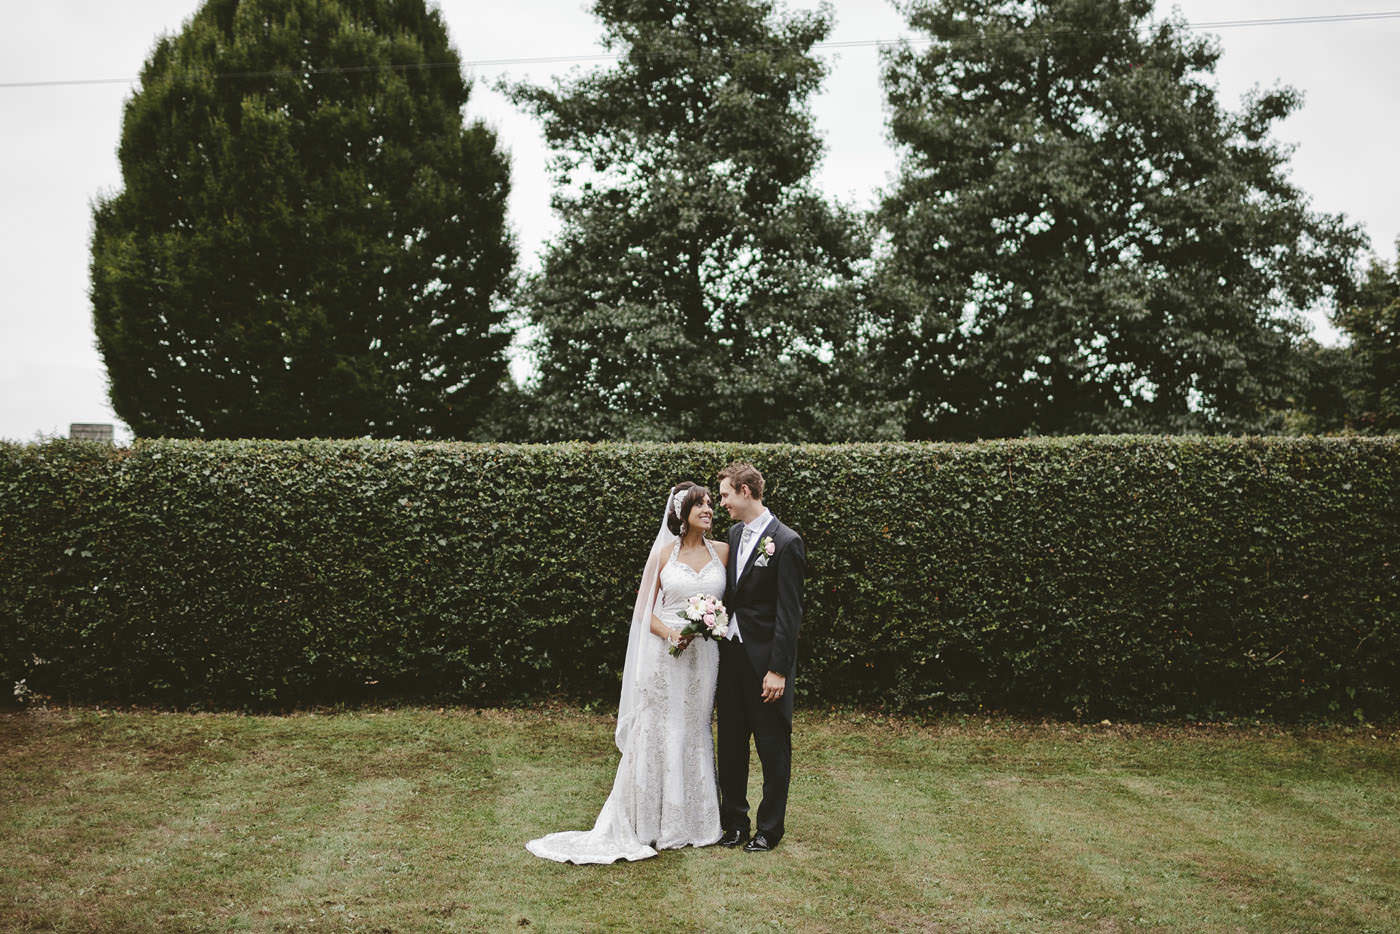 chrisangela virginia water wedding photographer 0069